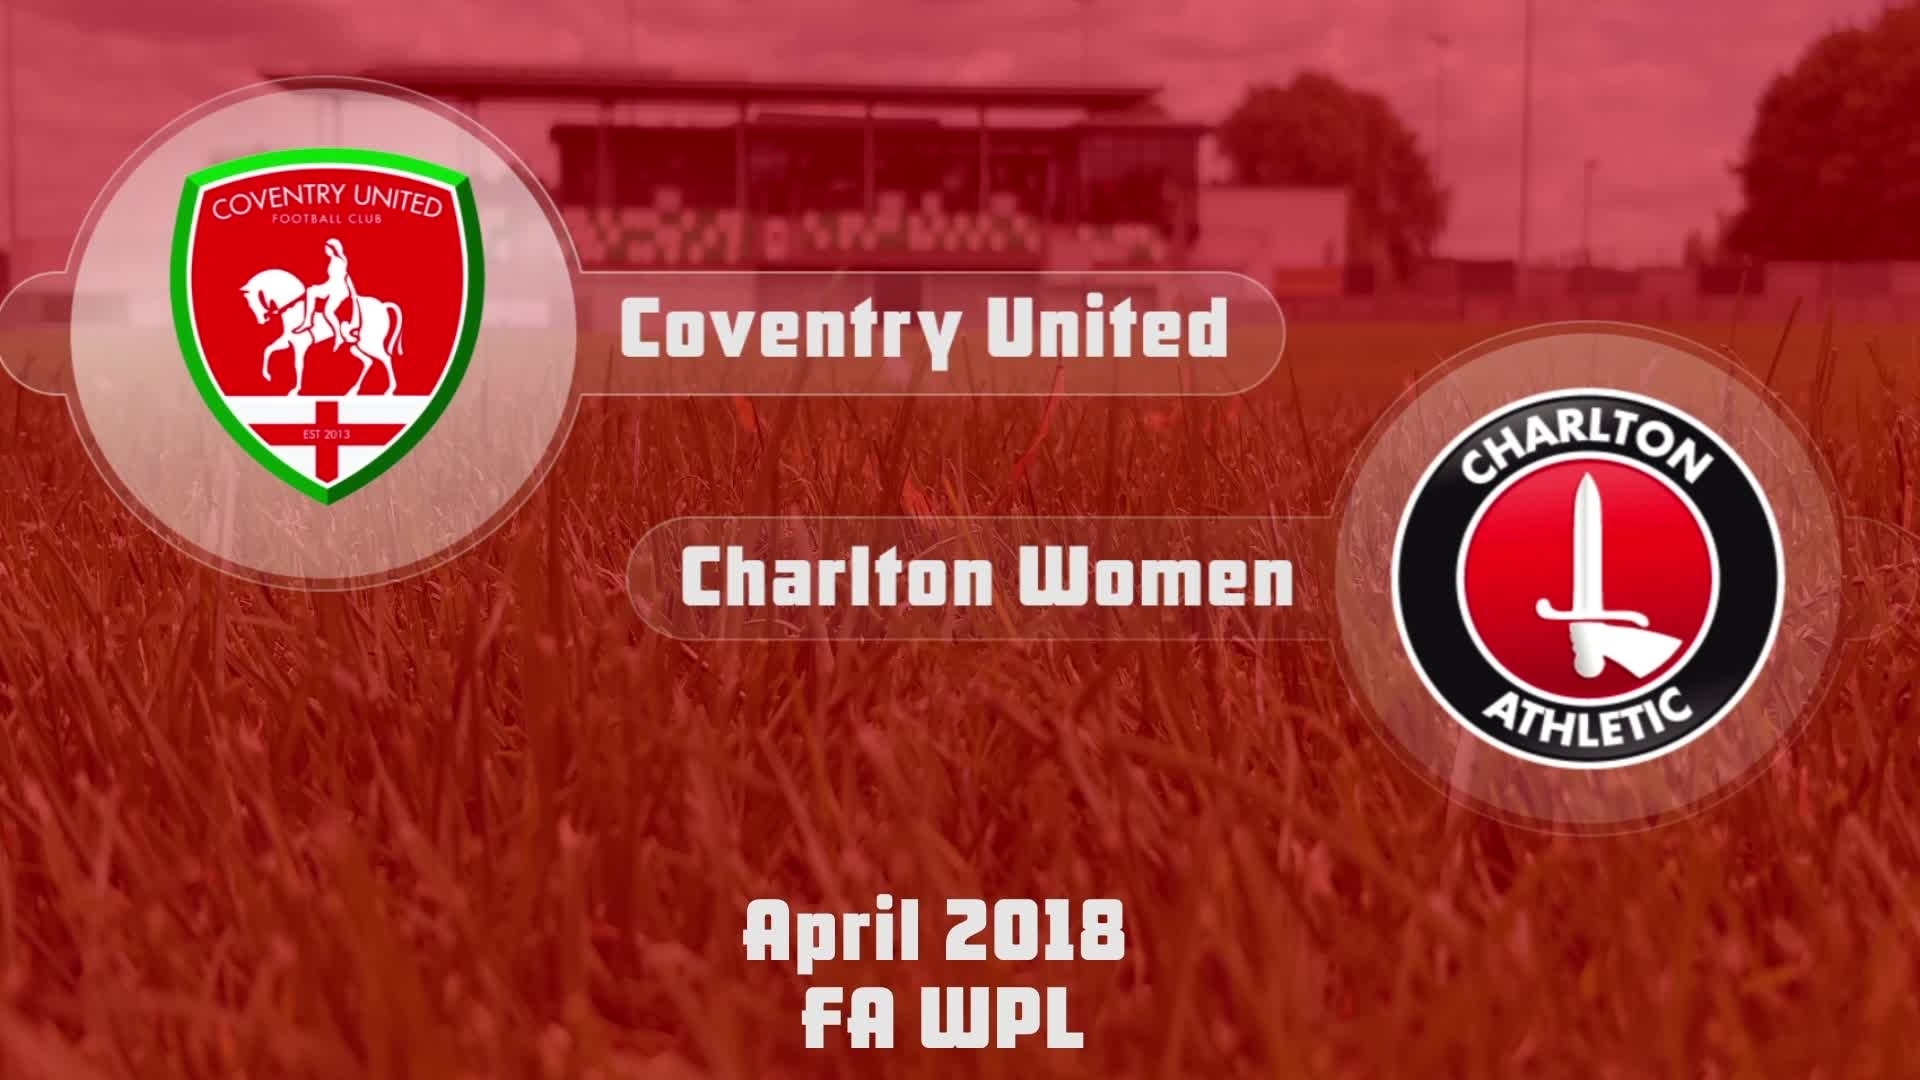 WOMEN'S HIGHLIGHTS | Coventry United 0 Charlton 3 (April 2018)